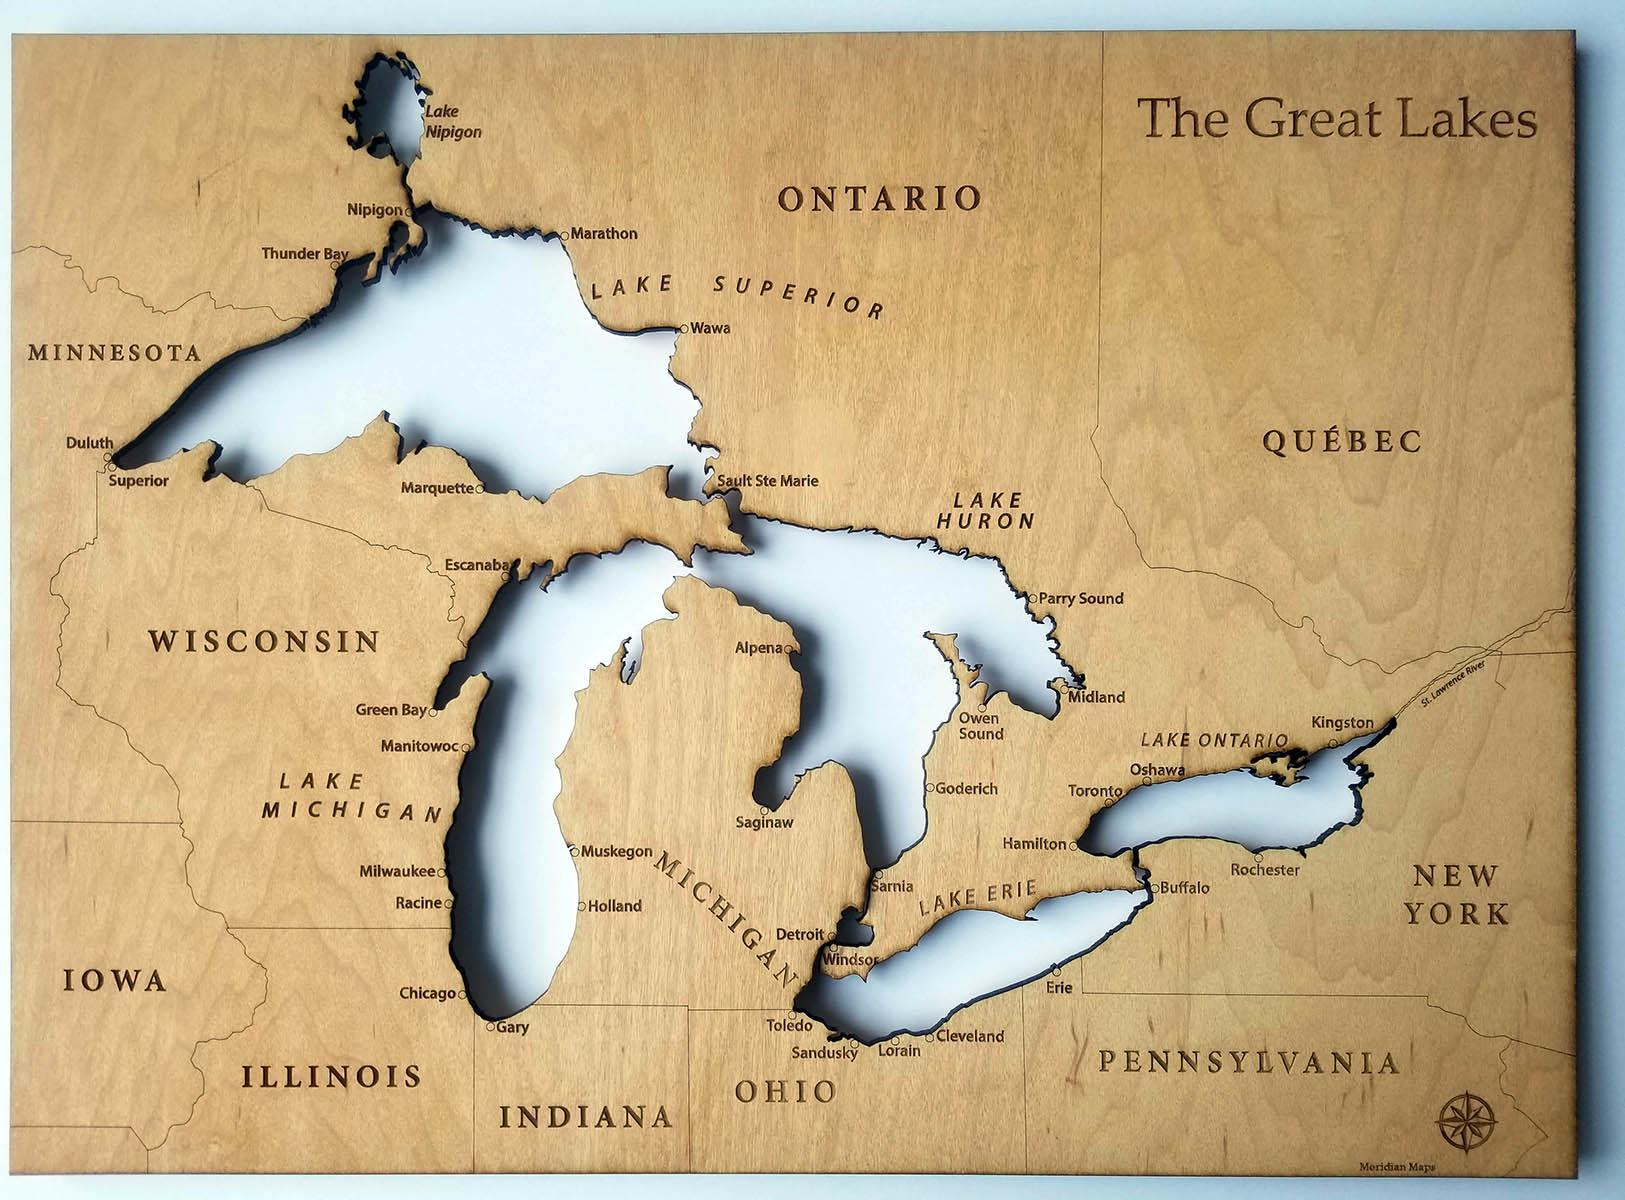 I Made A Wood Burnt Laser Cut Map Of The Great Lakes